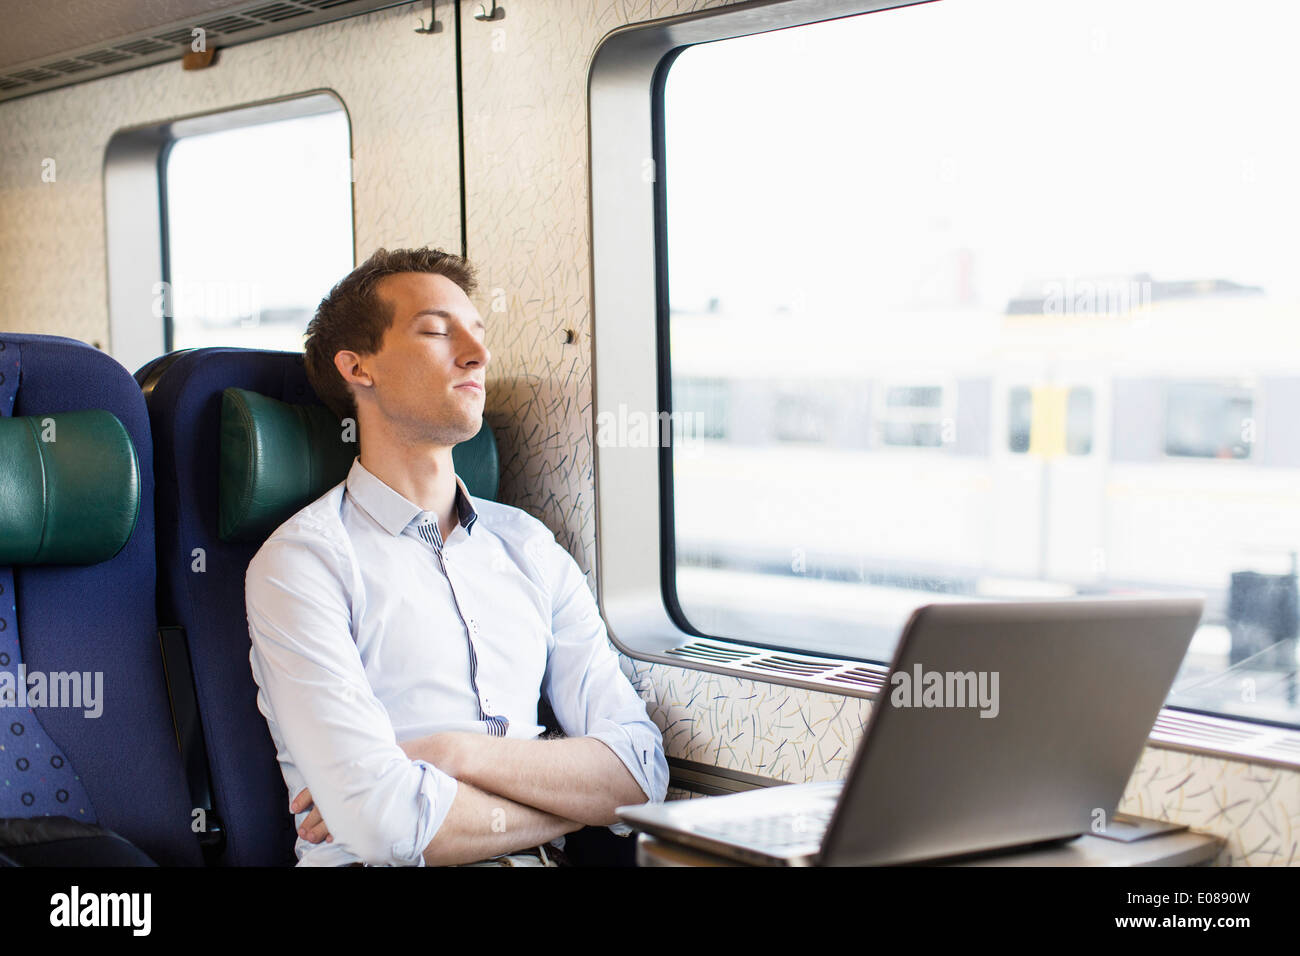 Young businessman sleeping on train - Stock Image